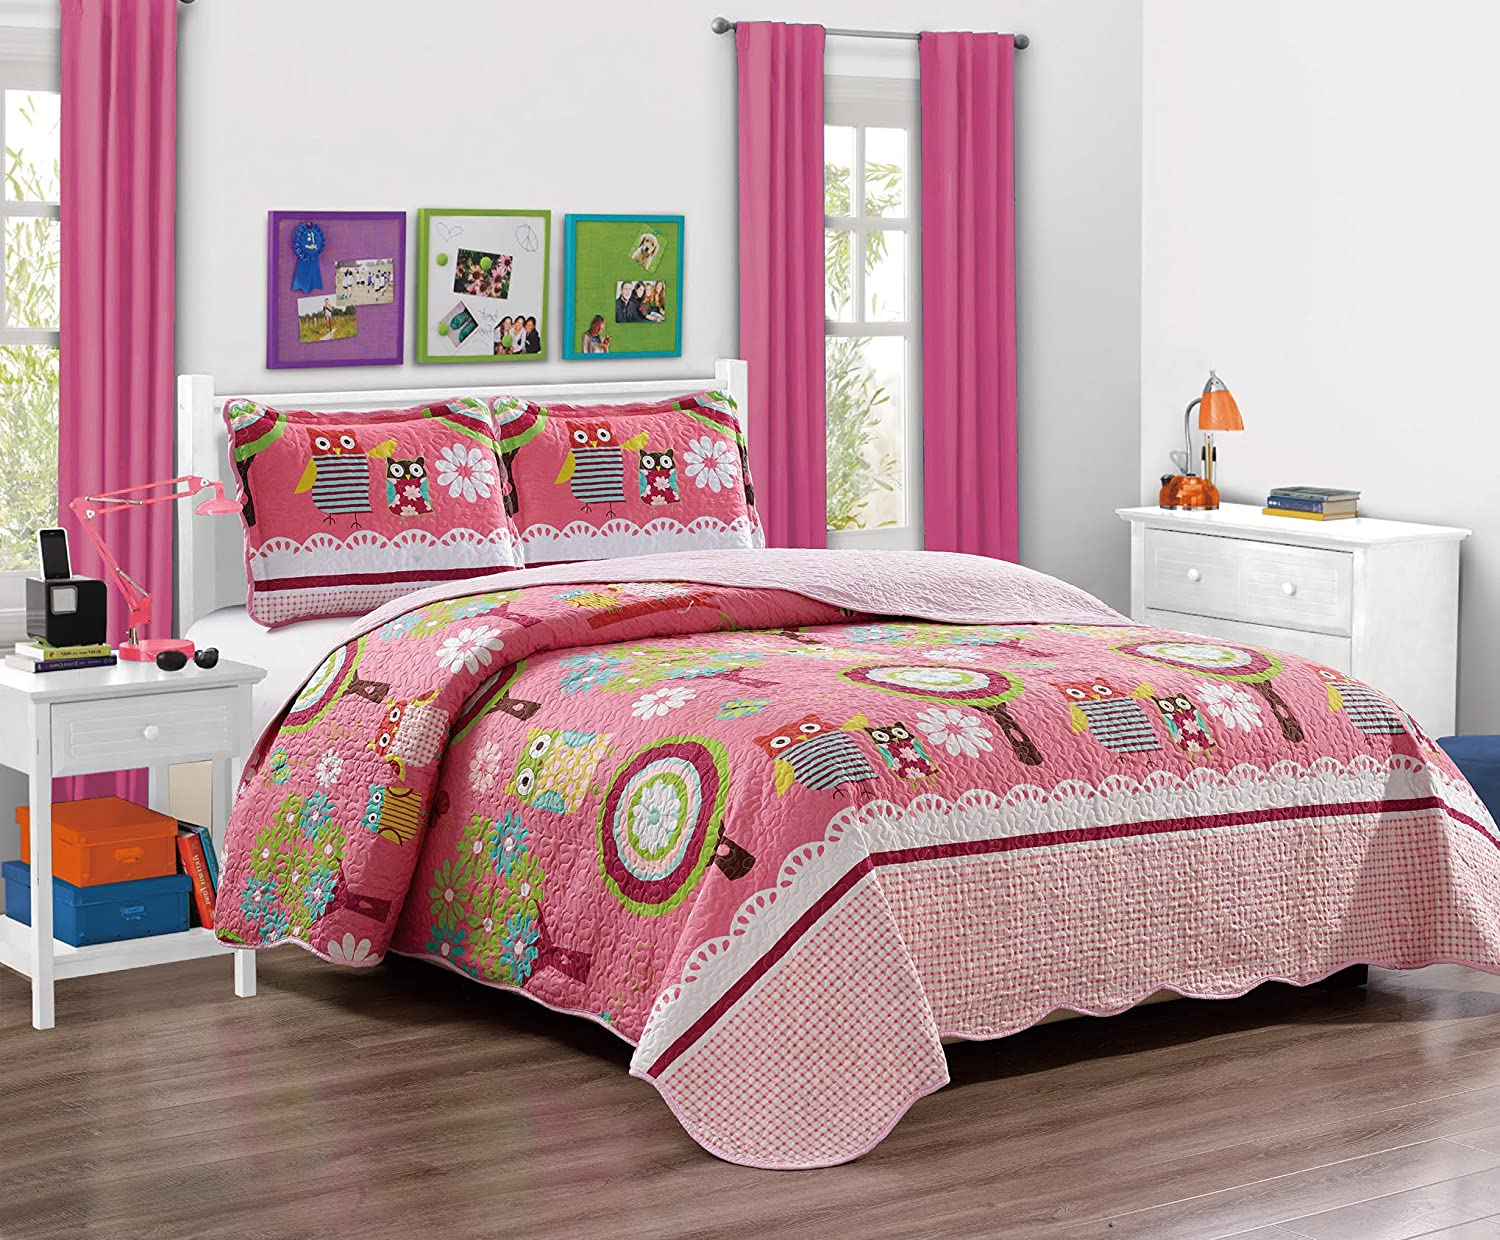 cute teen room decor.htm amazon com mk collection twin size 2 pc bedspread teens girls owl  mk collection twin size 2 pc bedspread